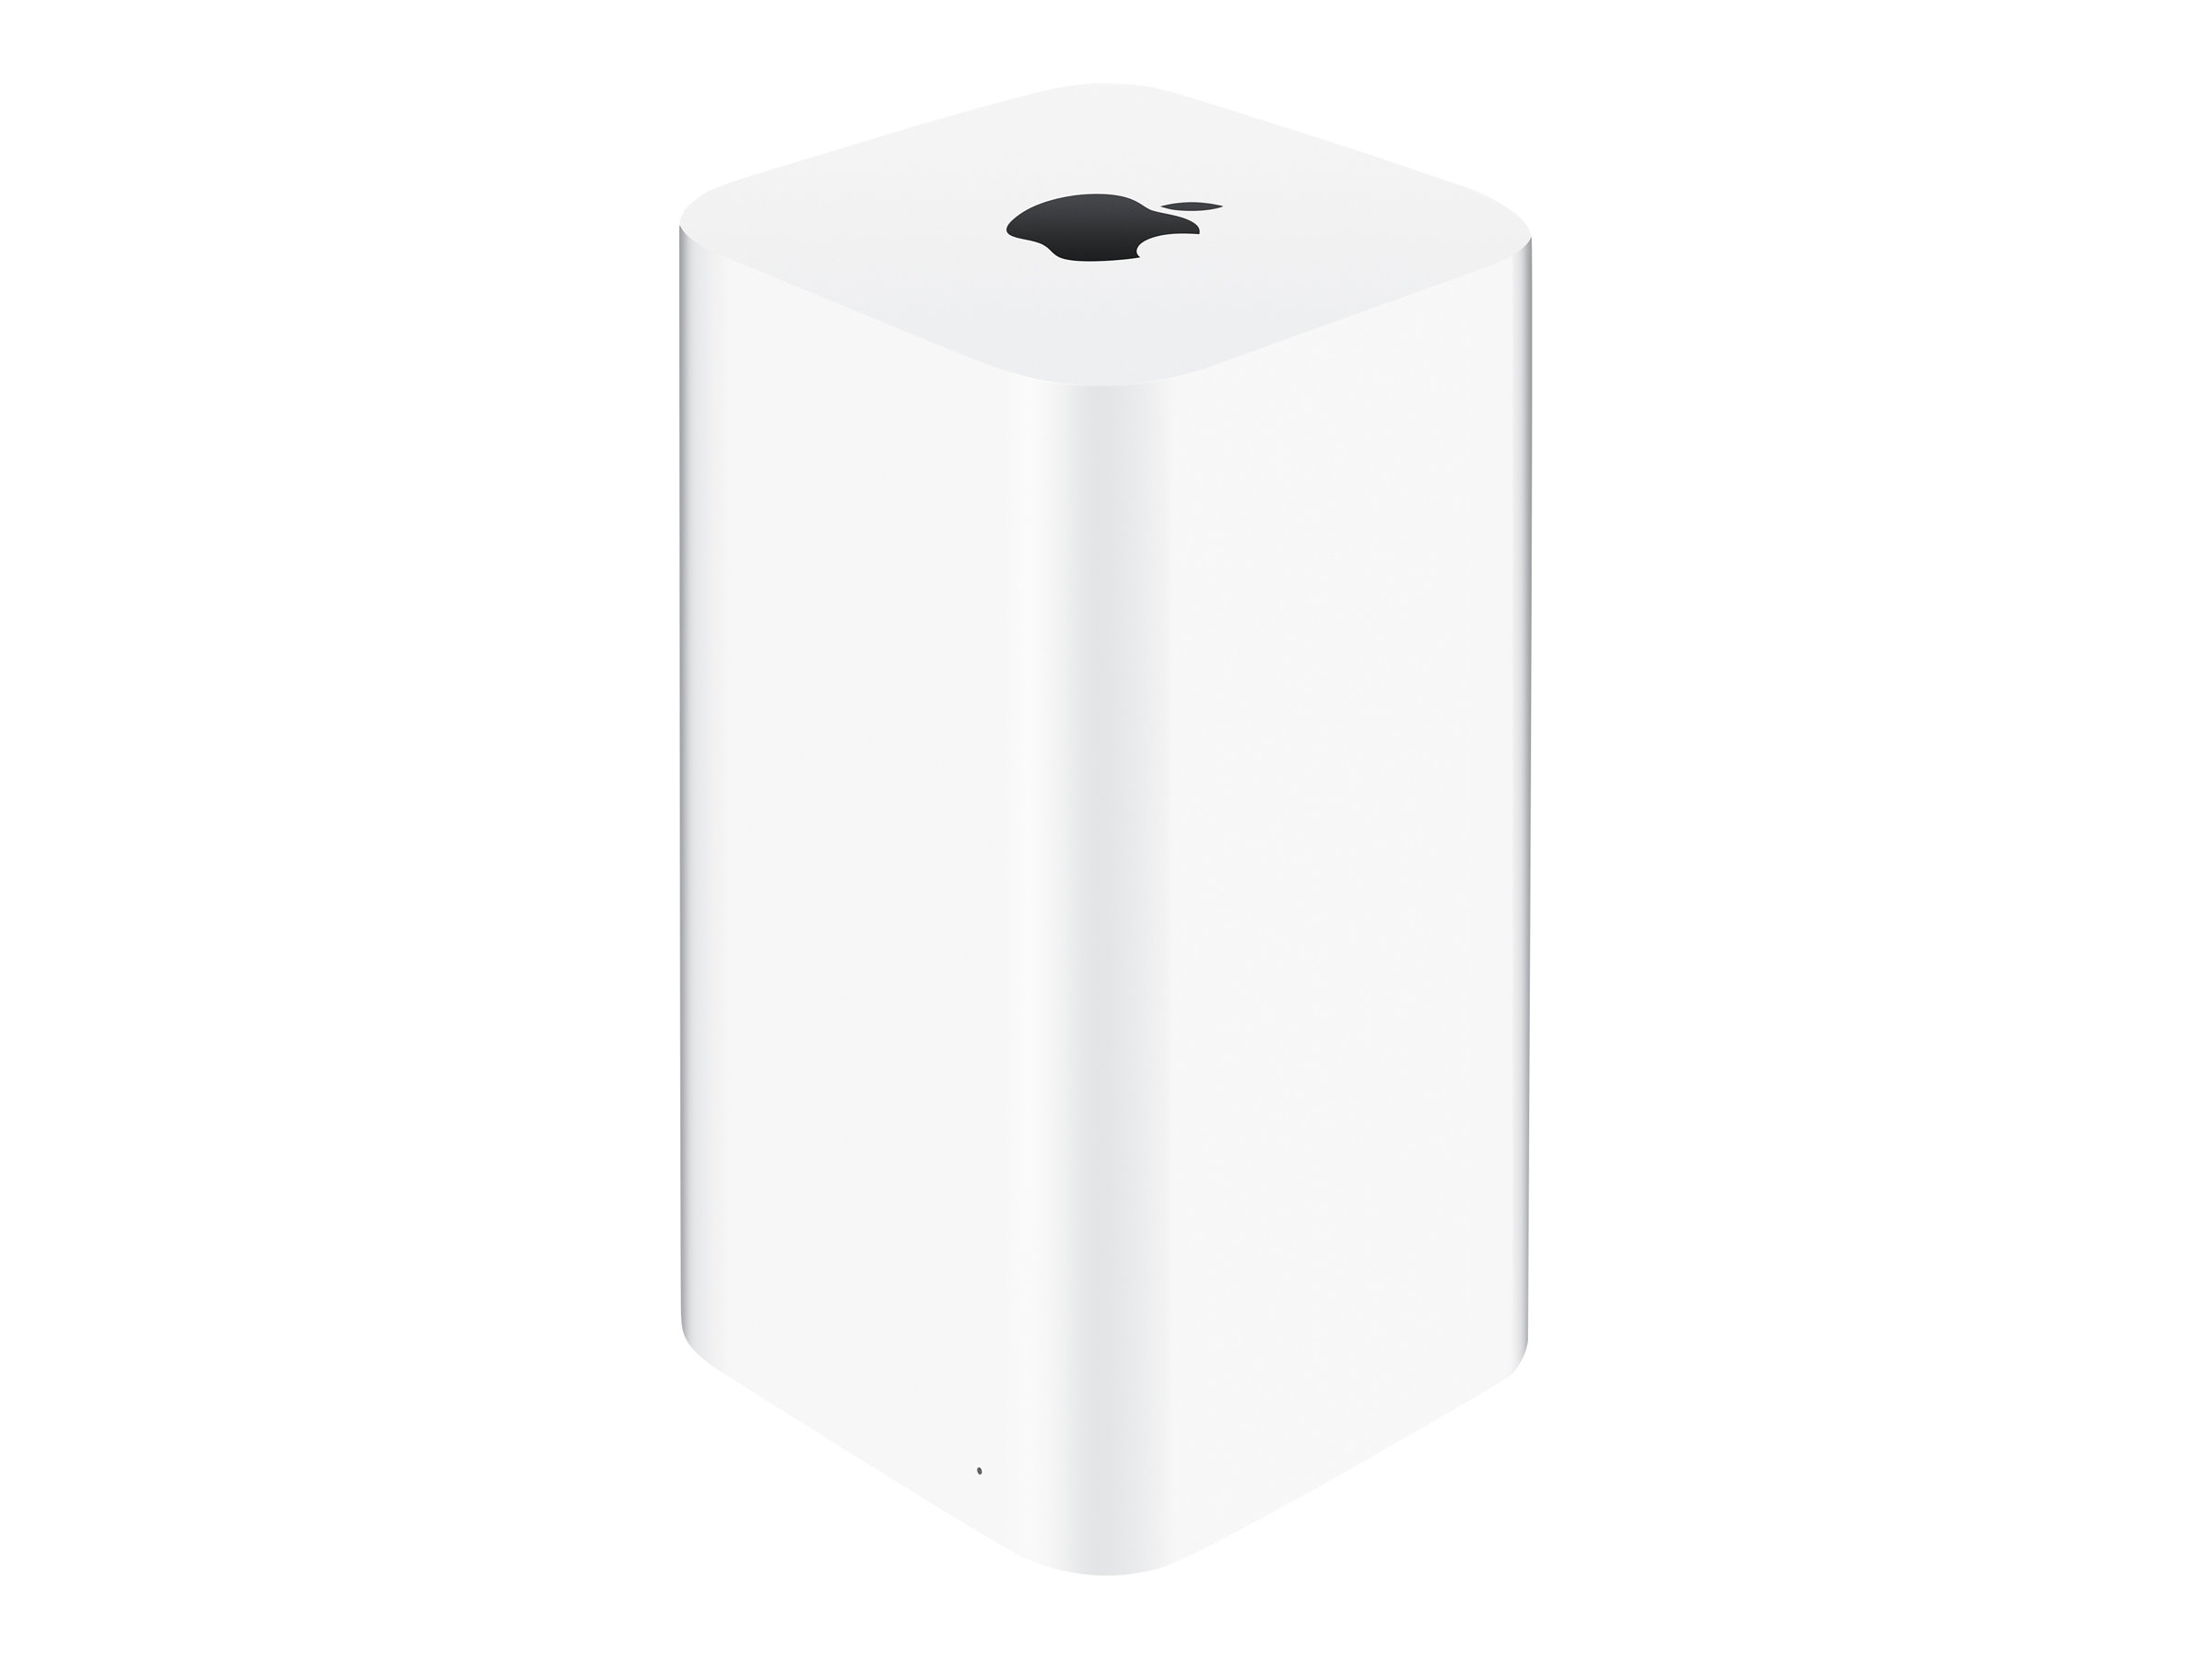 Apple AirPort Extreme Base Station - Drahtlose Basisstation - Wi-Fi - Dualband - für Apple TV (2nd,3rd,4th Generation)